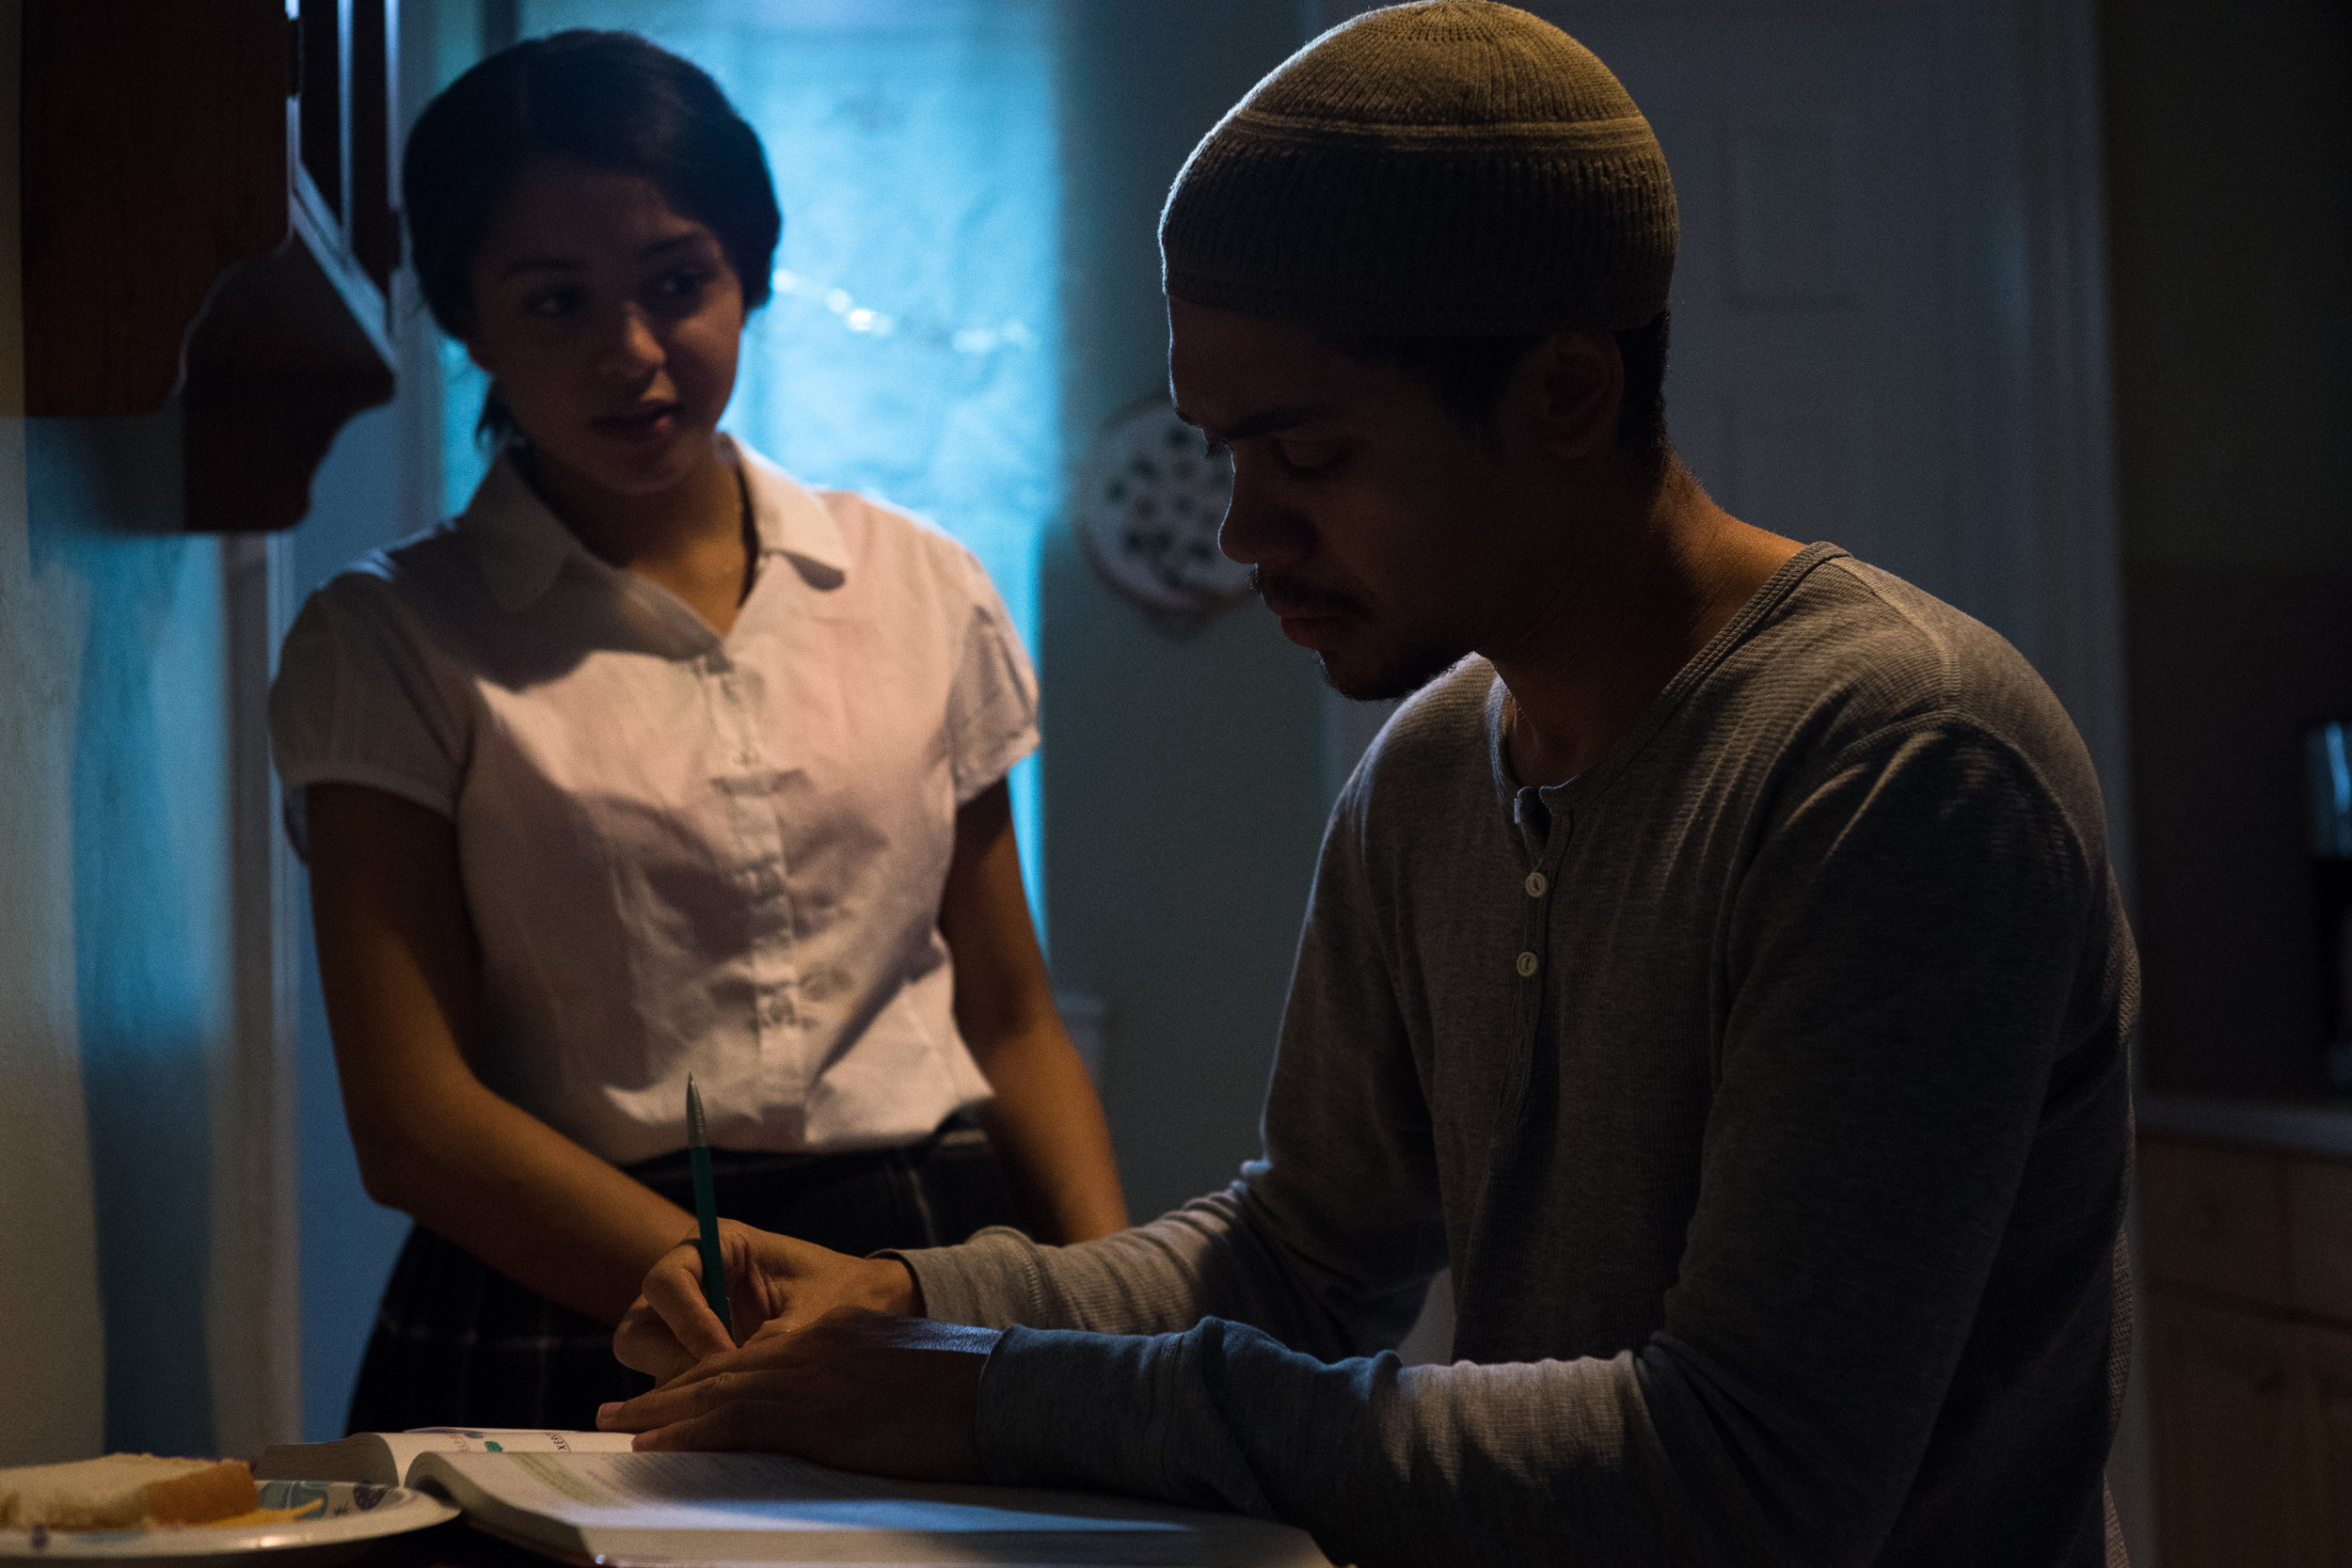 Naya (Crystal de la Cruz) helps Abdul (Reynaldo Piniella) with his math homework